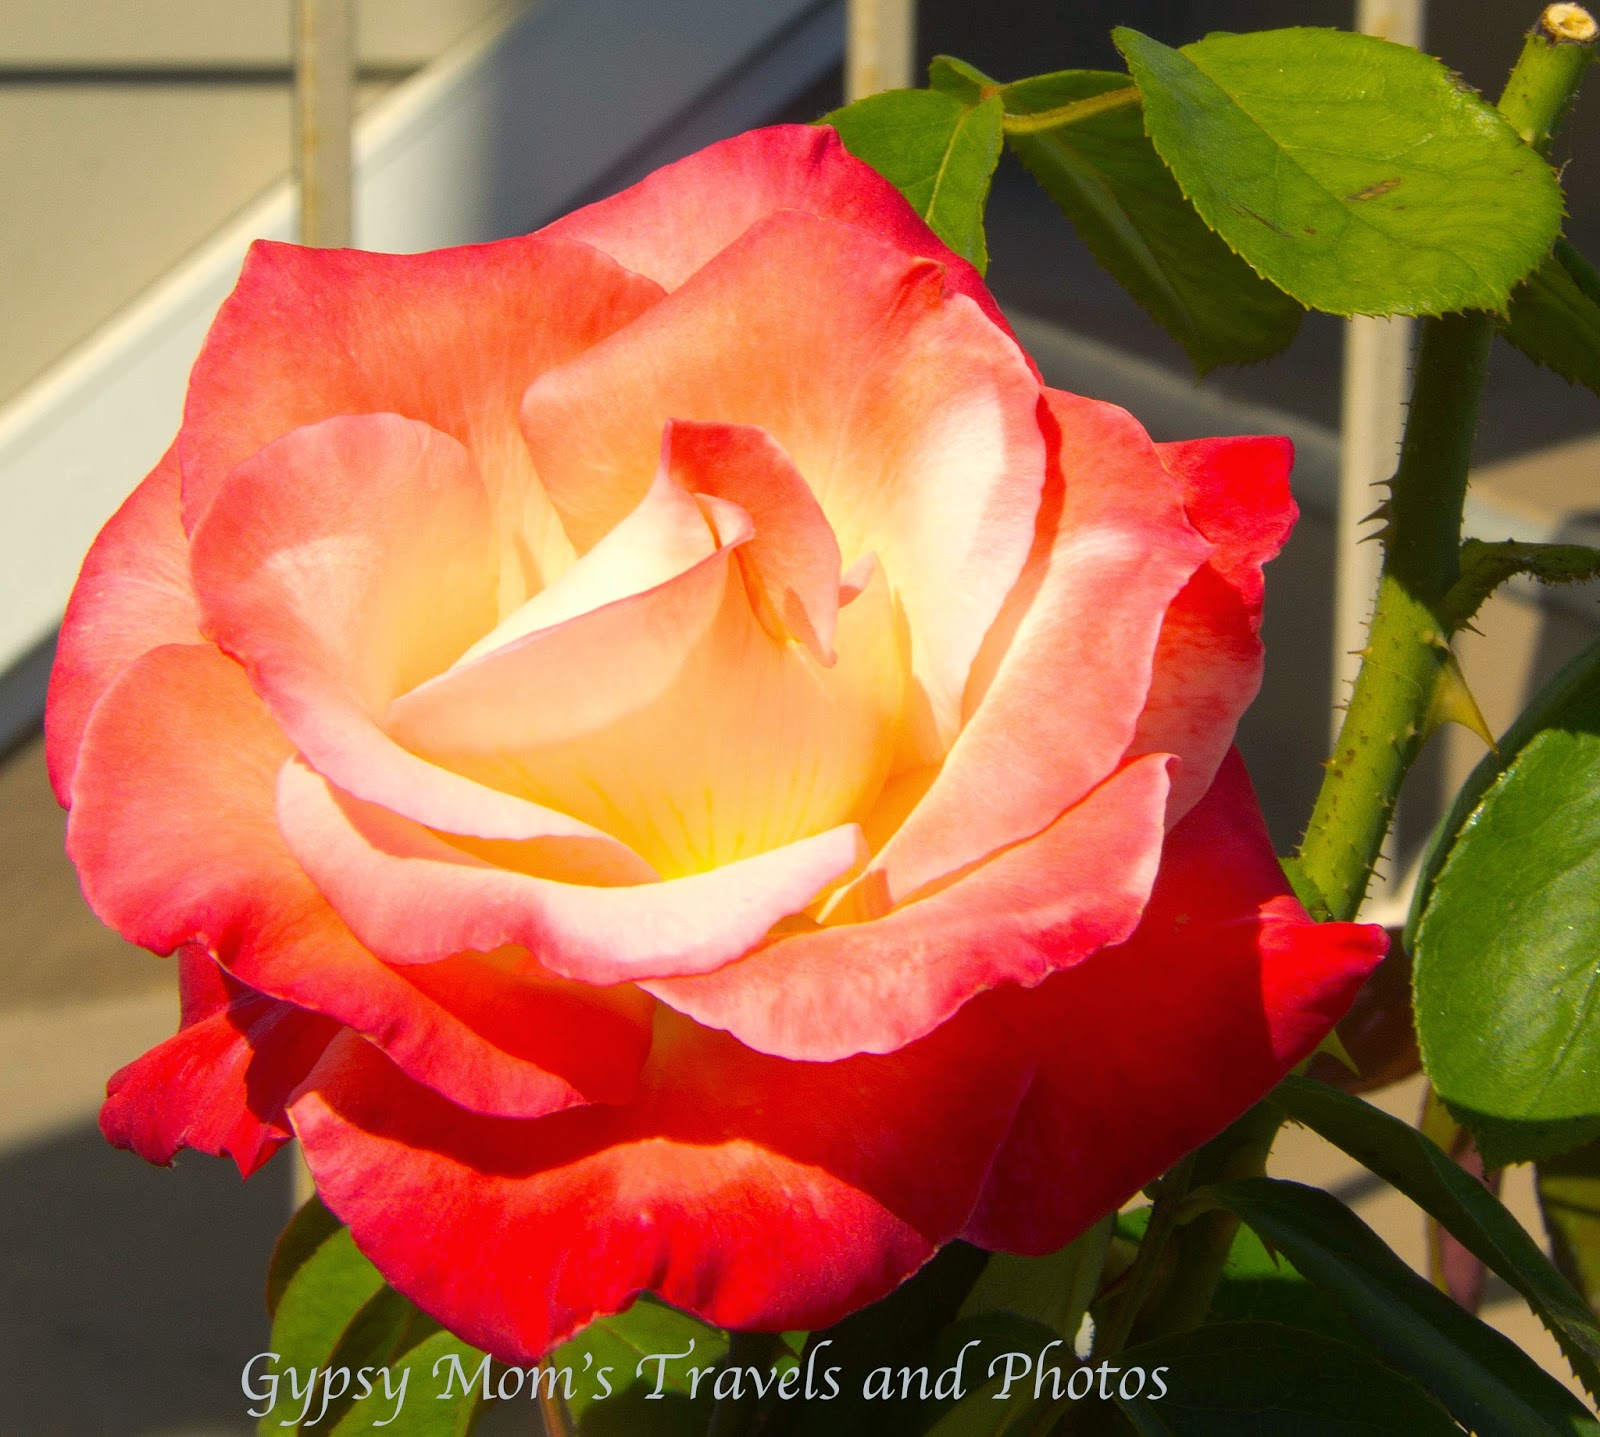 Red Rose with green leaves in front of home on Balboa Island